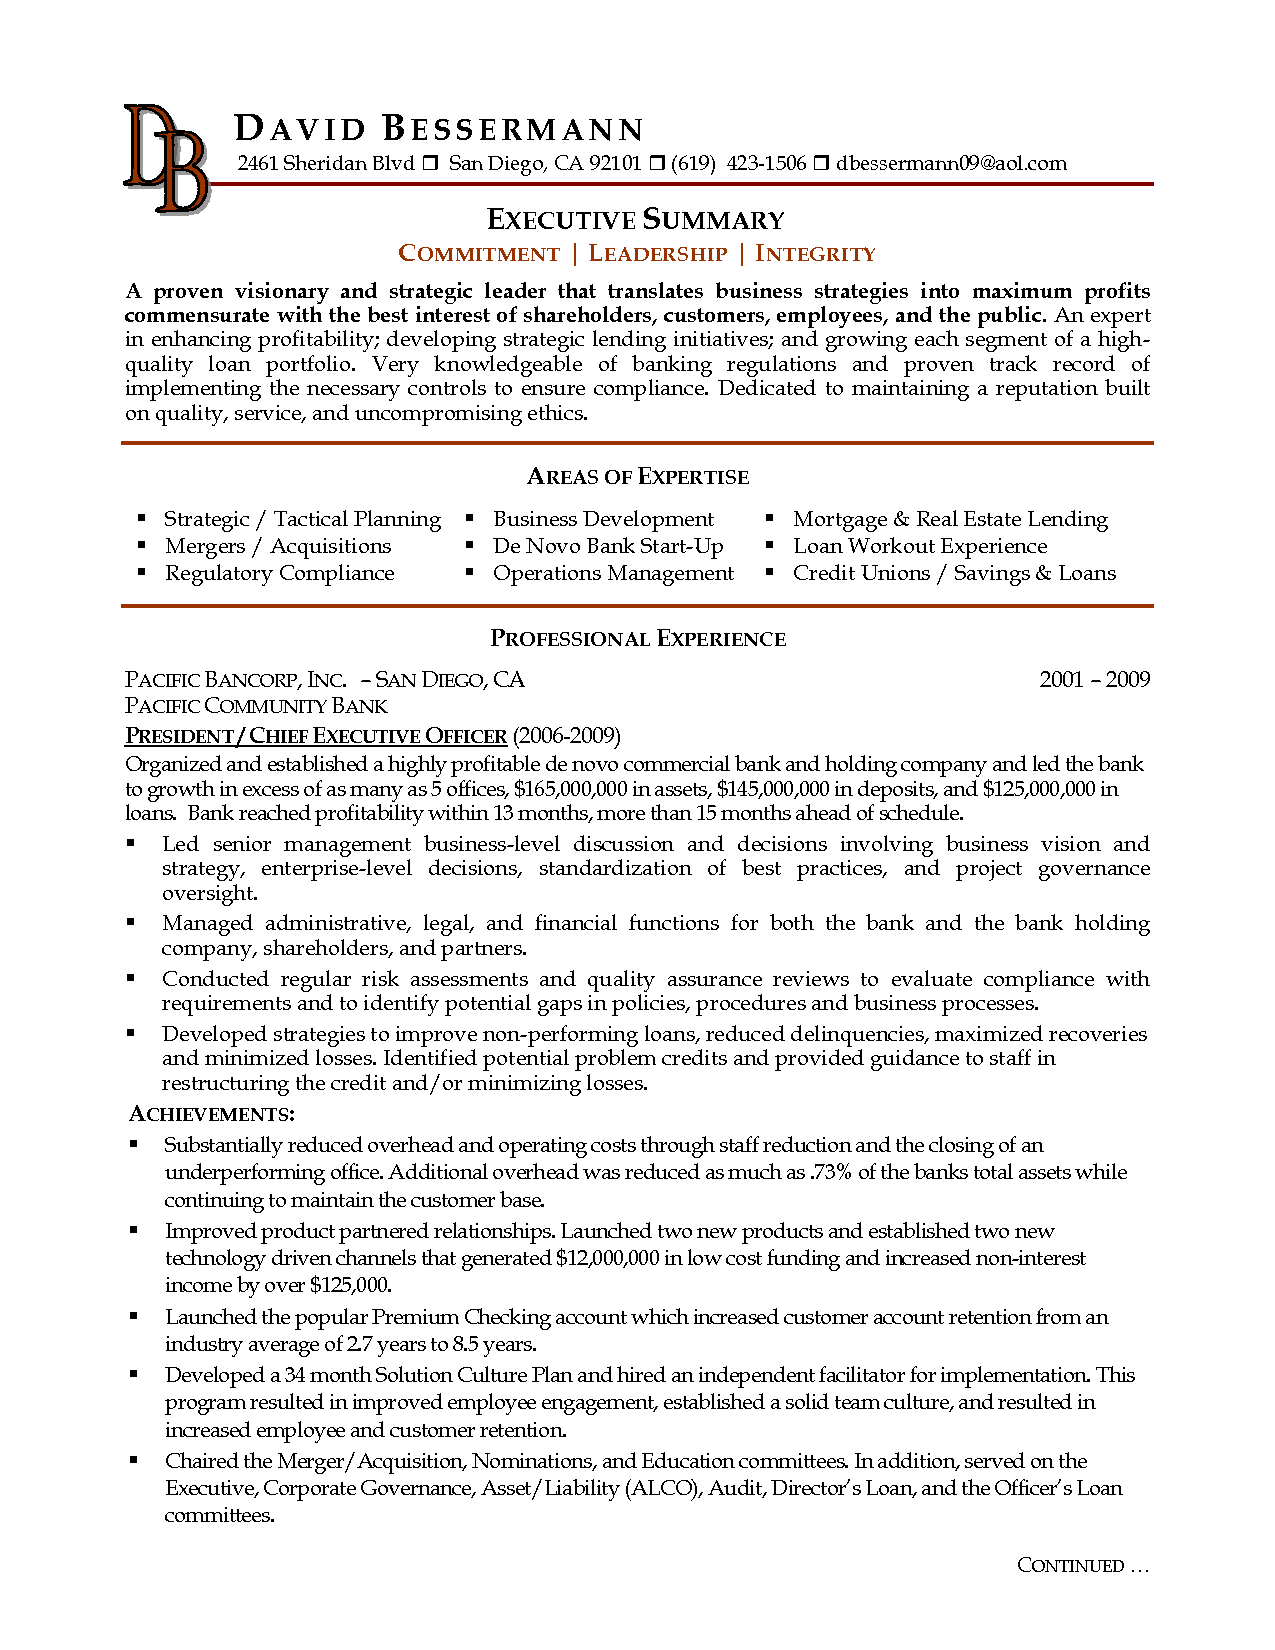 resume summary examples template example for students grant anderson landscape architect